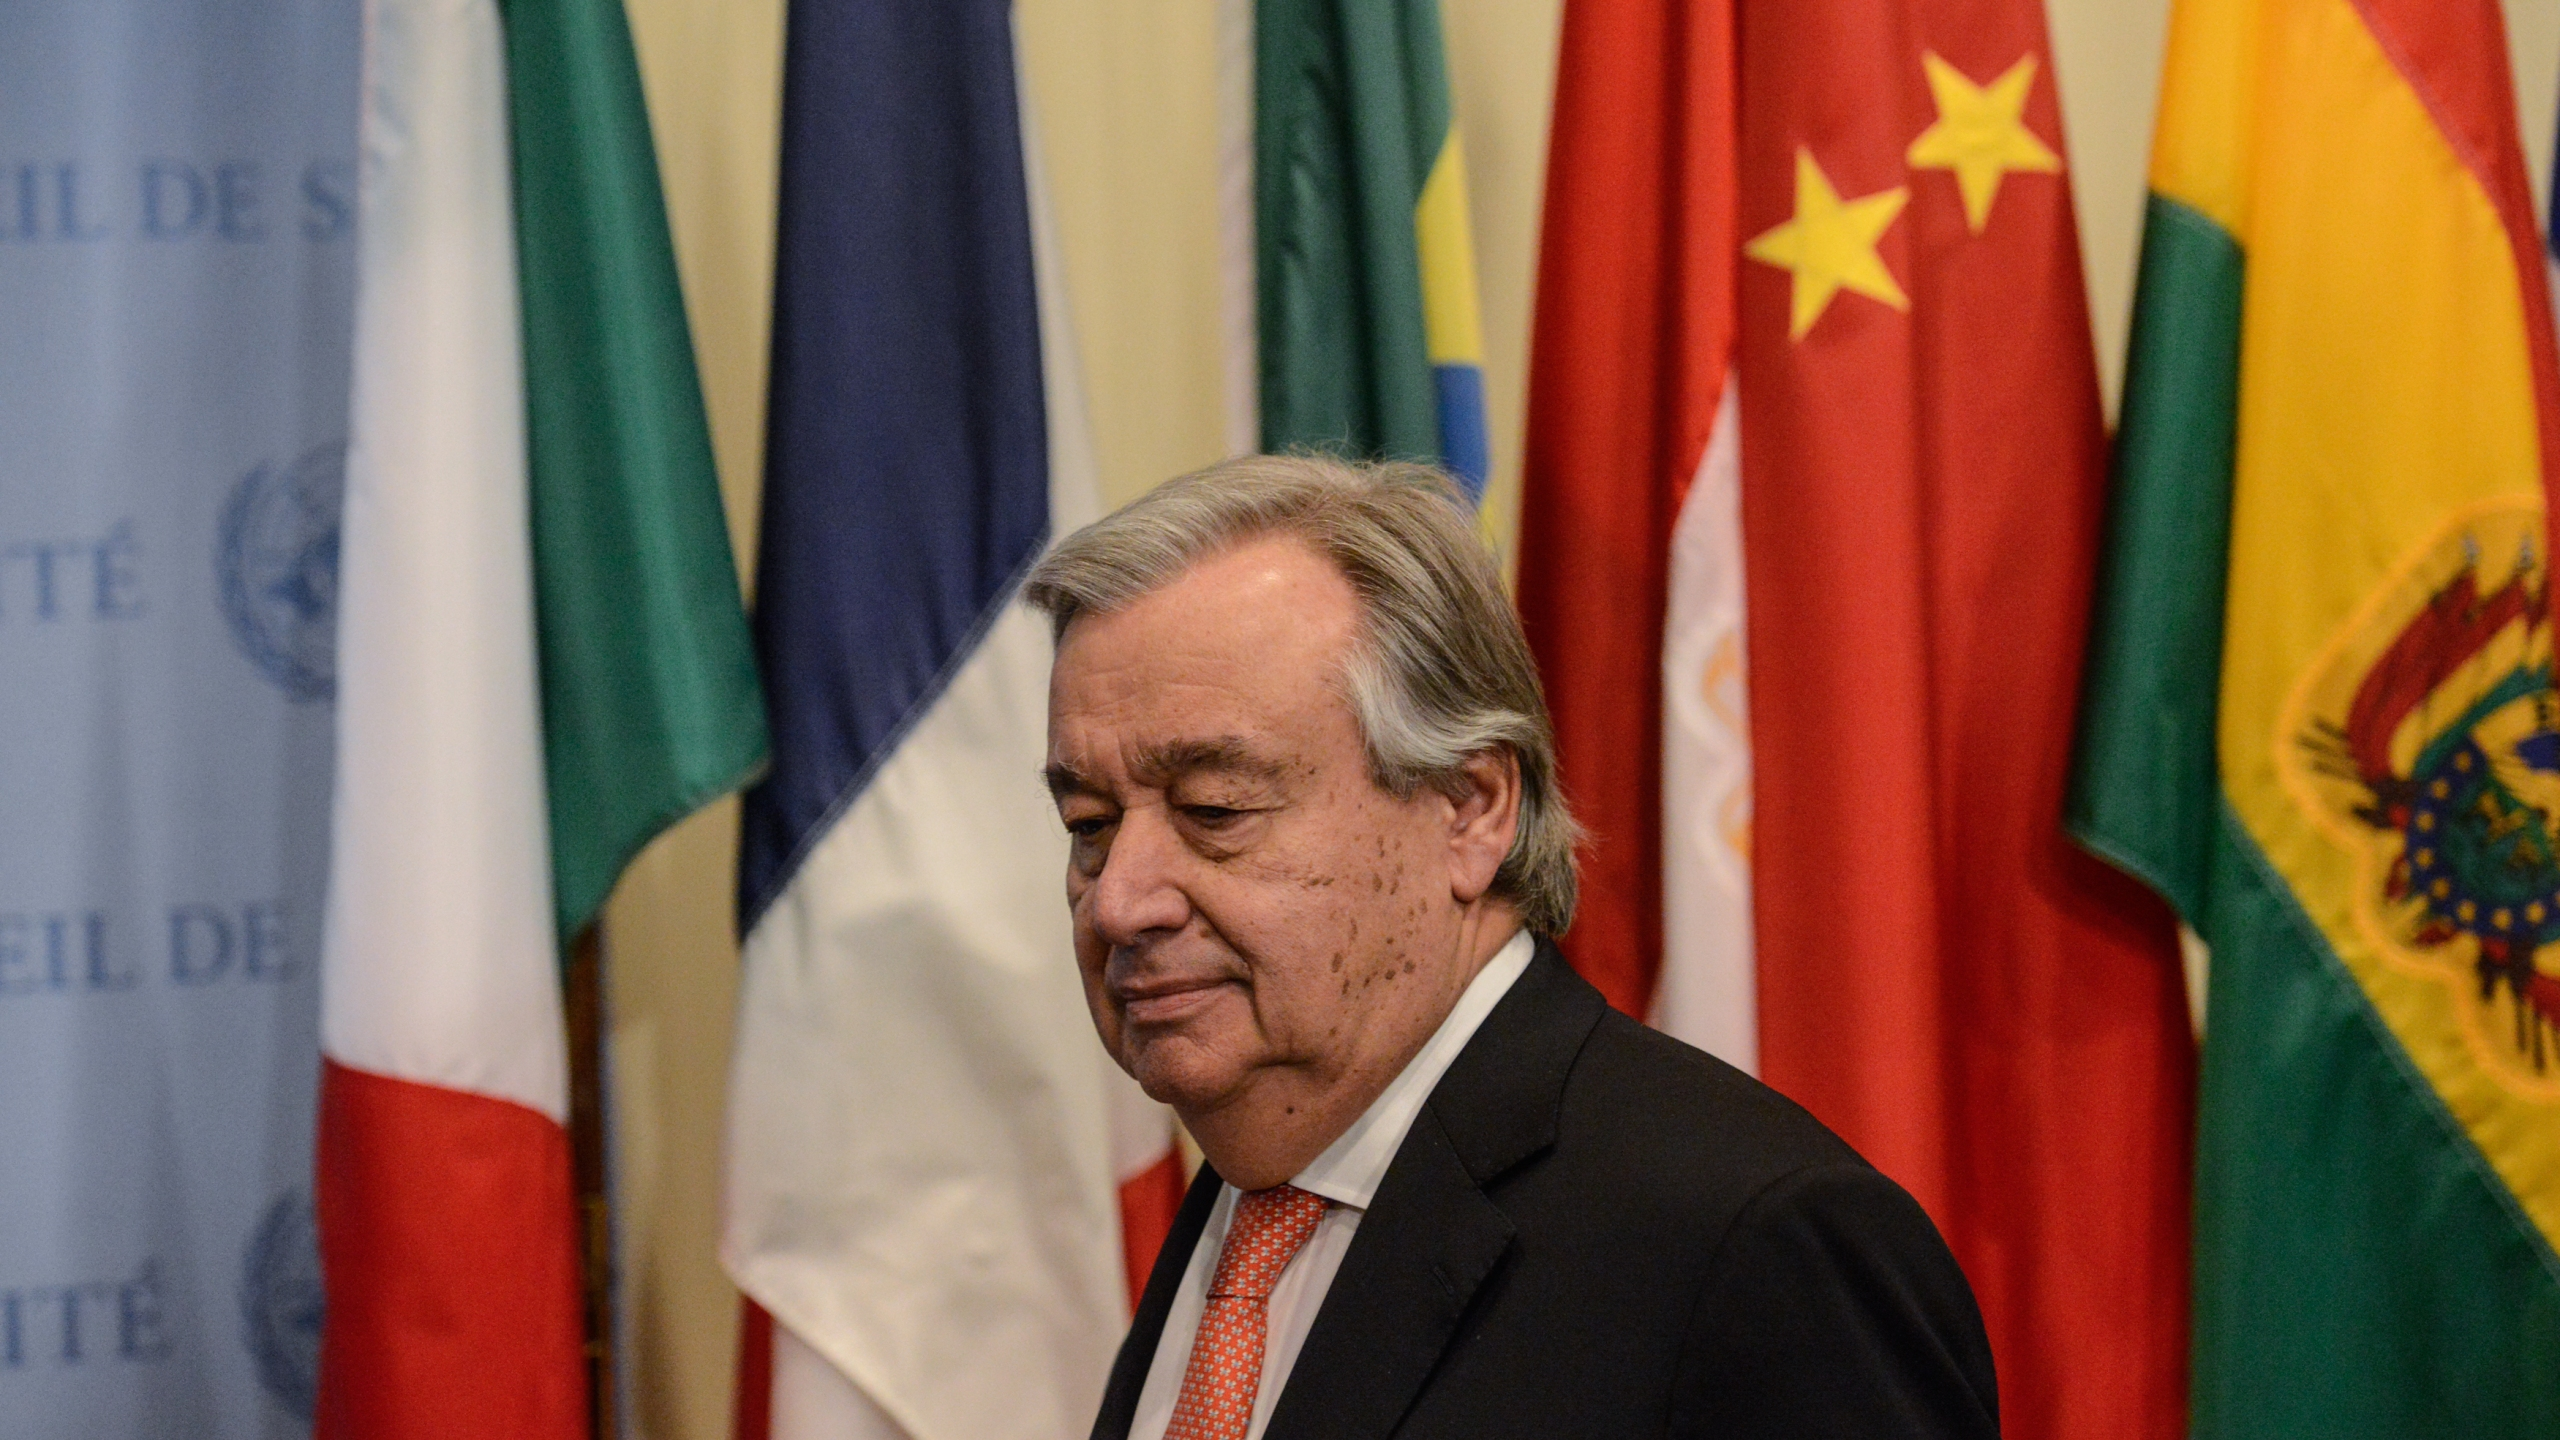 United Nations Secretary General António Guterres arrives to deliver remarks to the press at the U.N. headquarters on Dec. 6, 2017 in New York City. (Credit: Stephanie Keith/Getty Images)